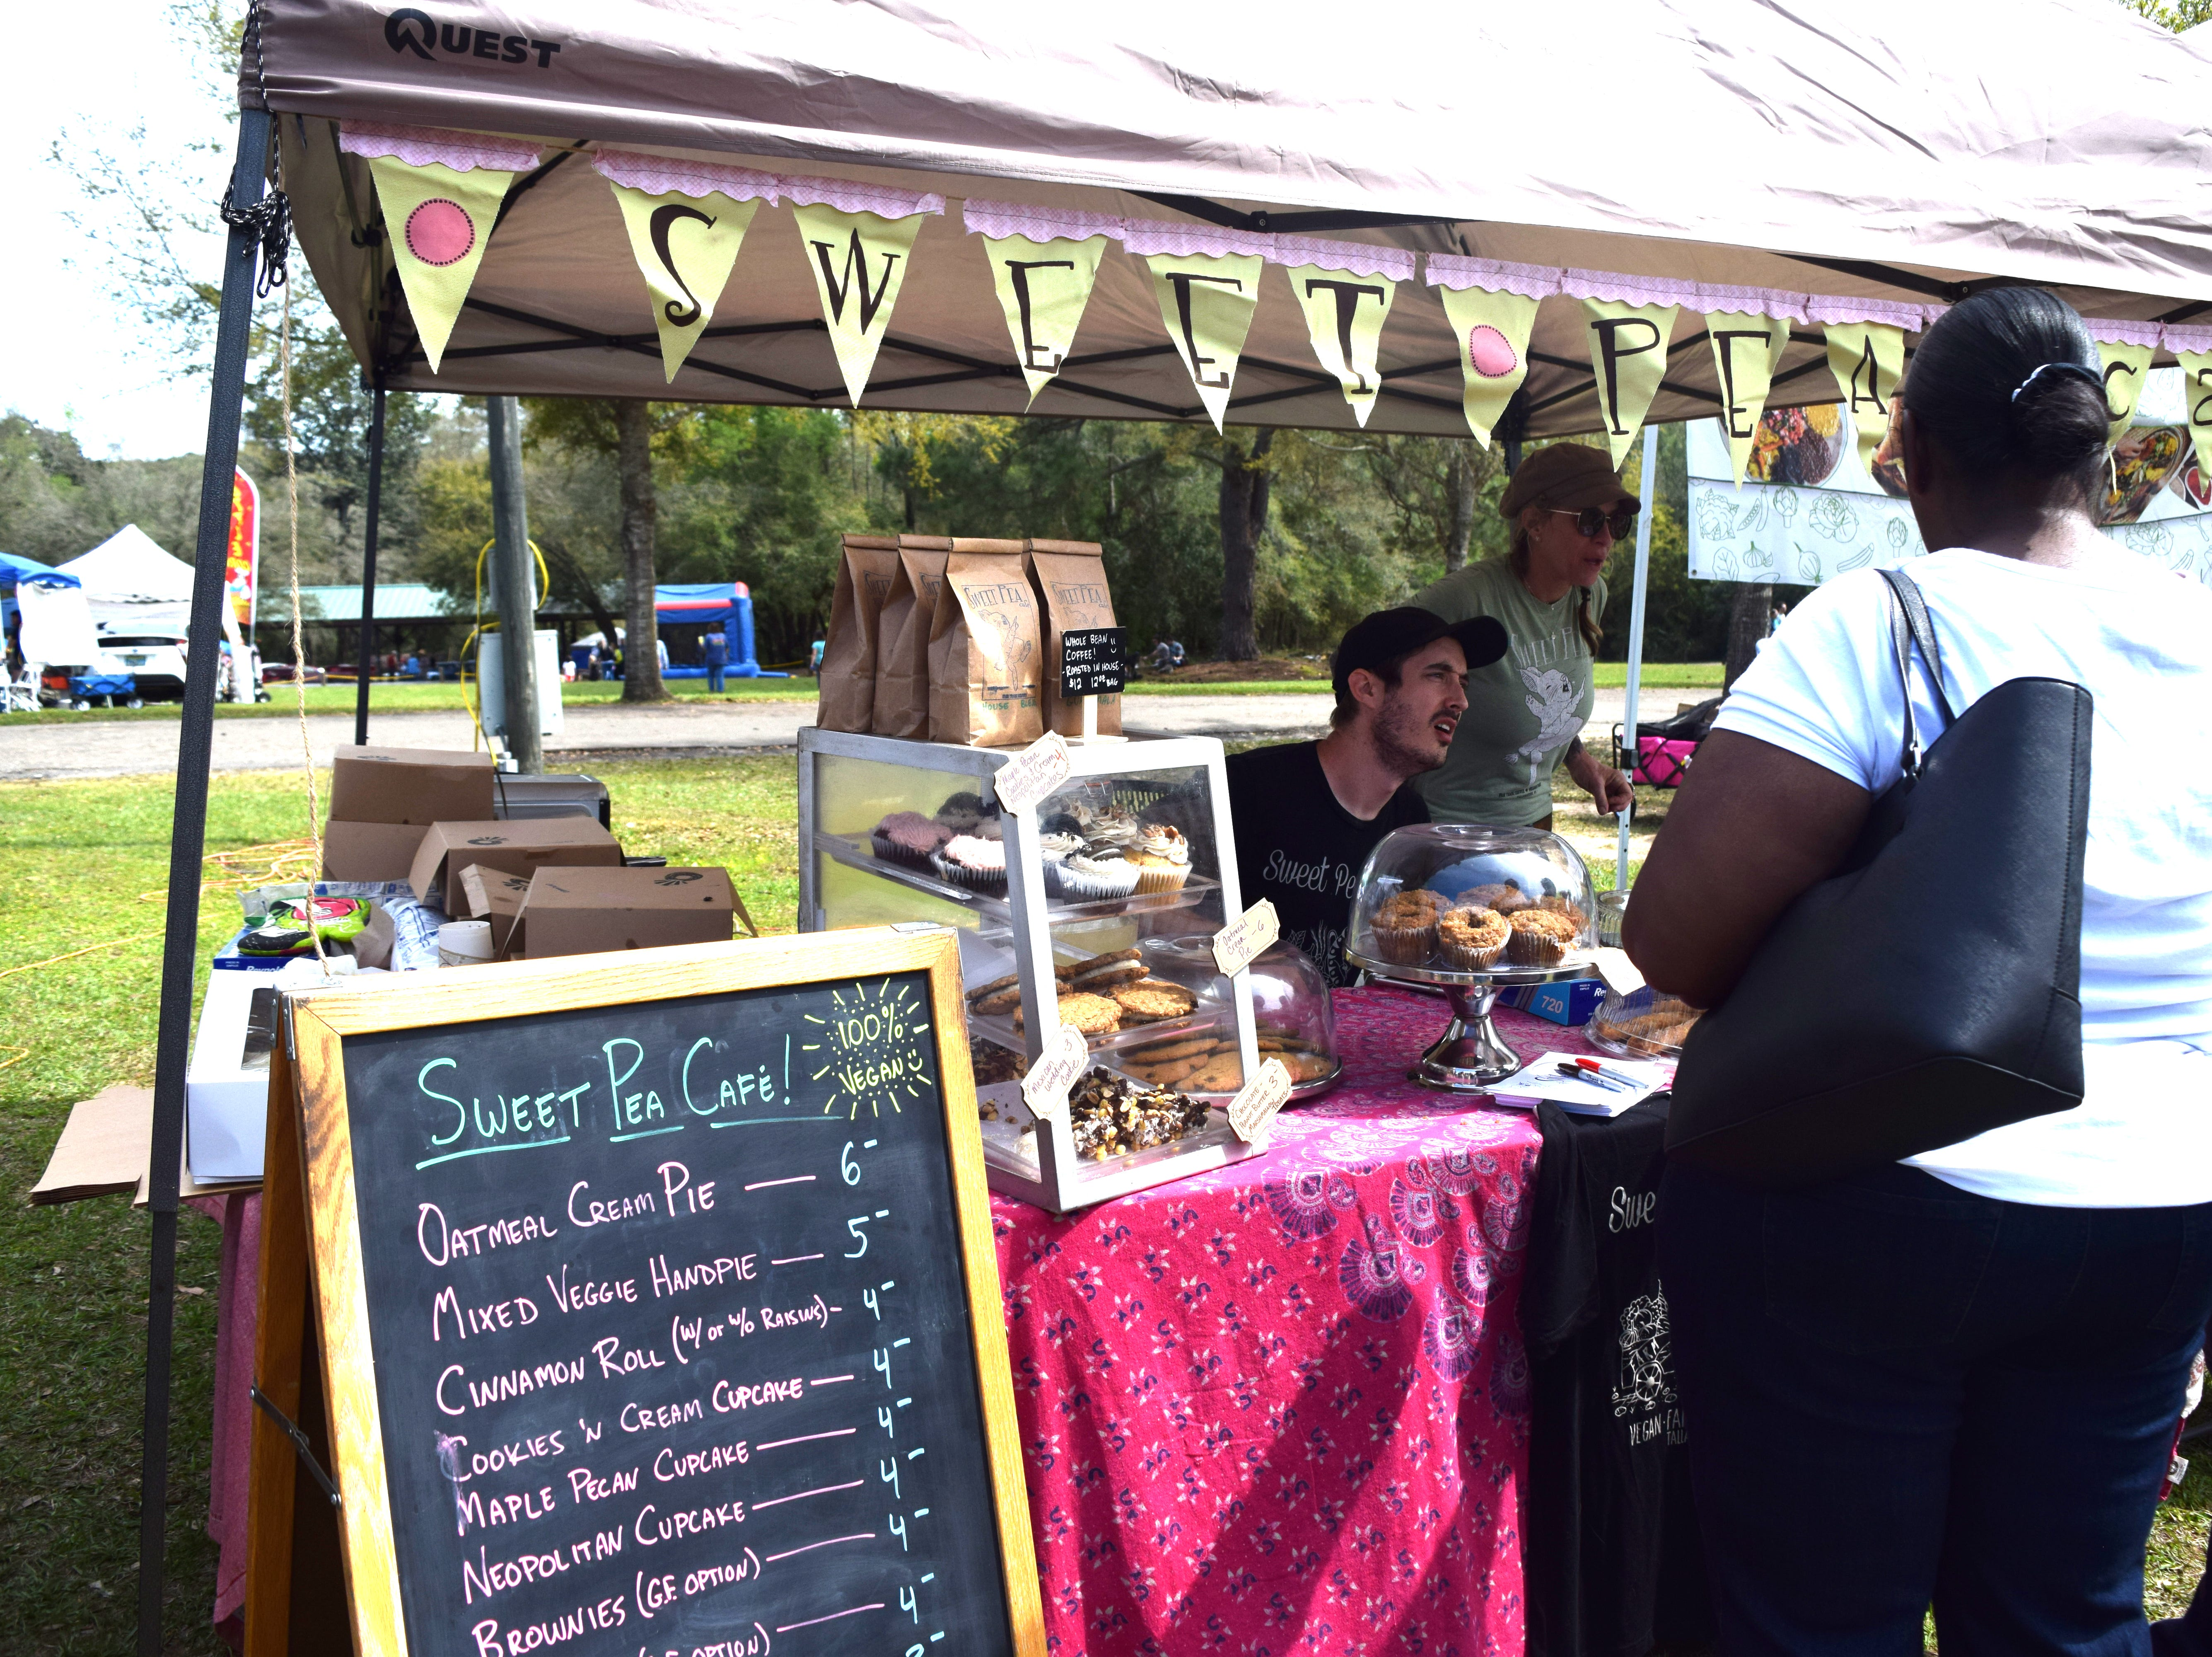 Vendors at the 5th annual North Florida VegFest promote vegetarian and vegan lifestyles.